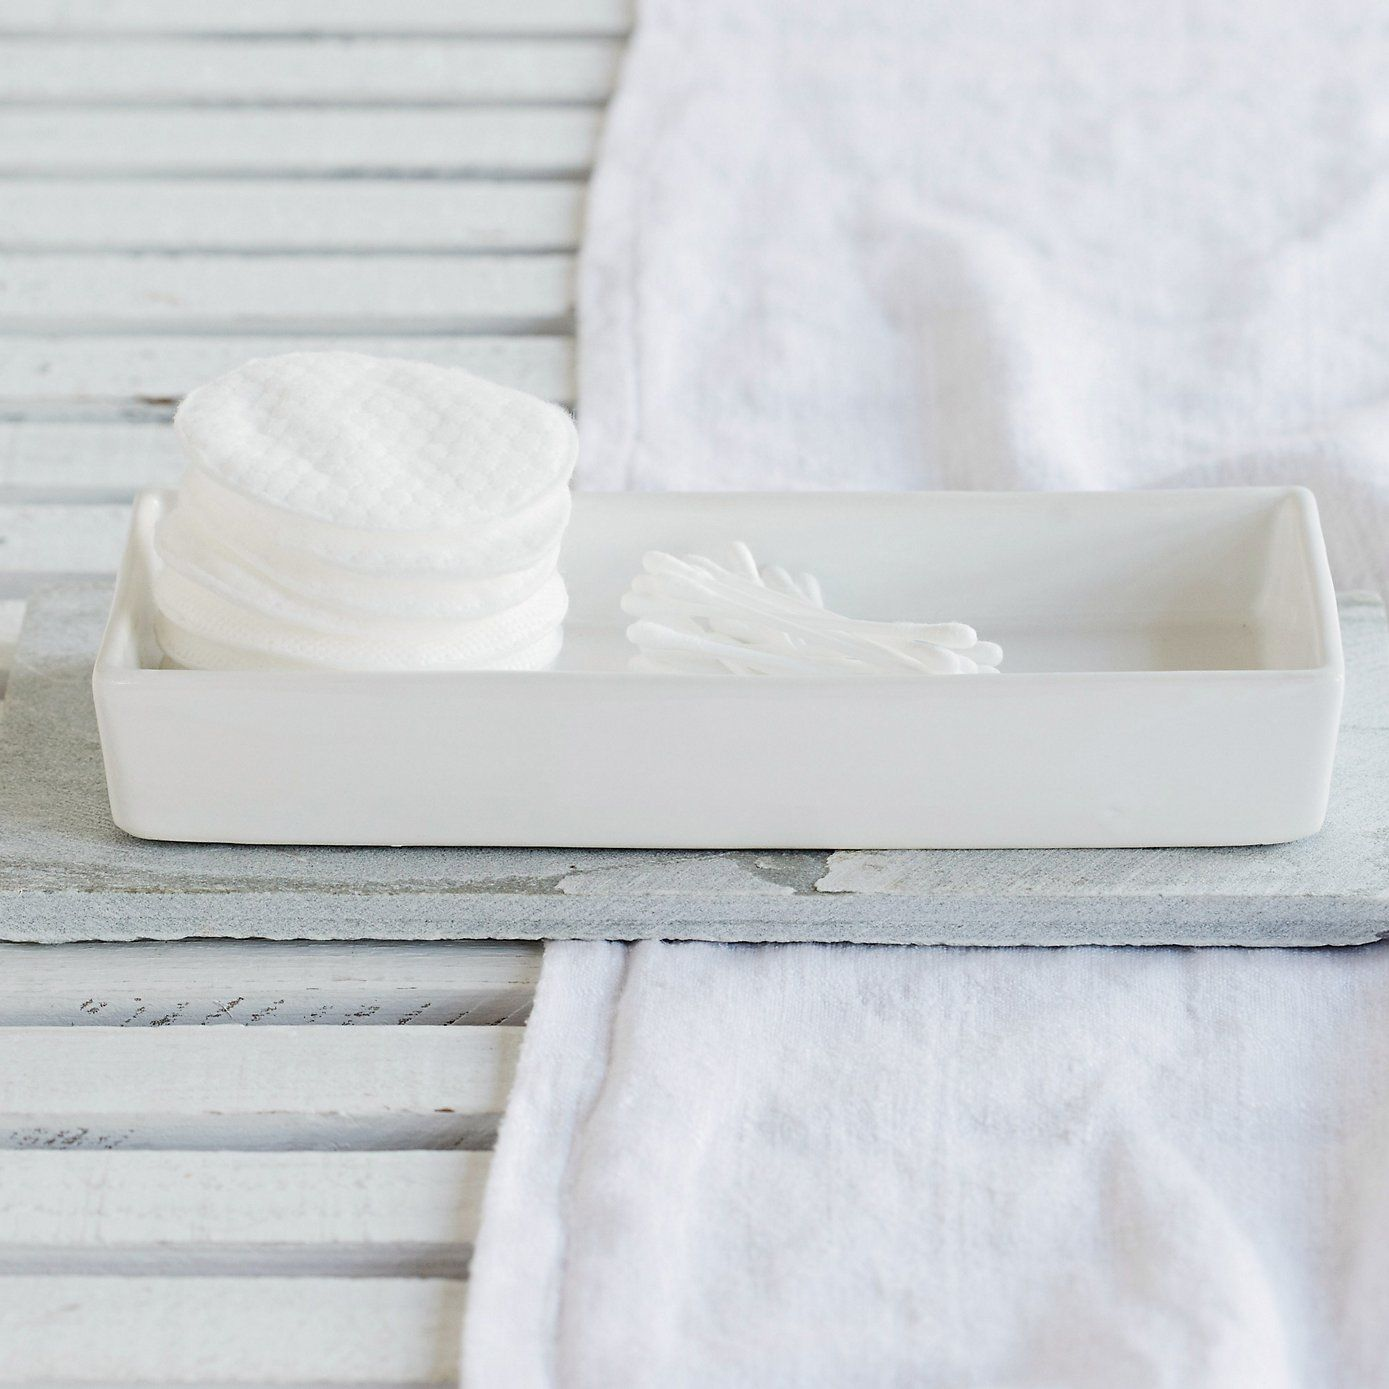 Ceramic Rectangular Container - White | The White Company | Bathroom ...